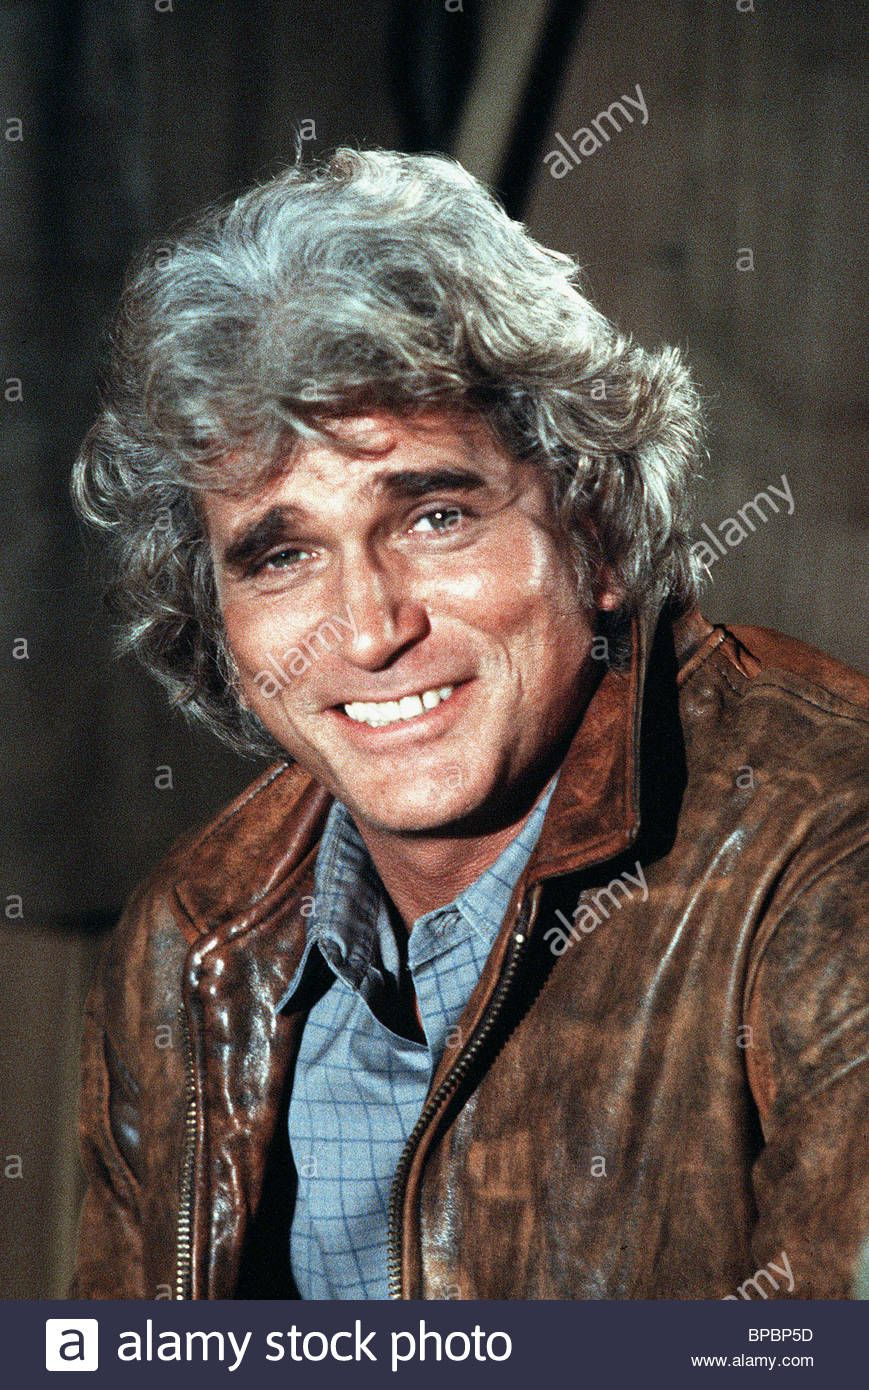 michael landon funeral - google search | michael landon